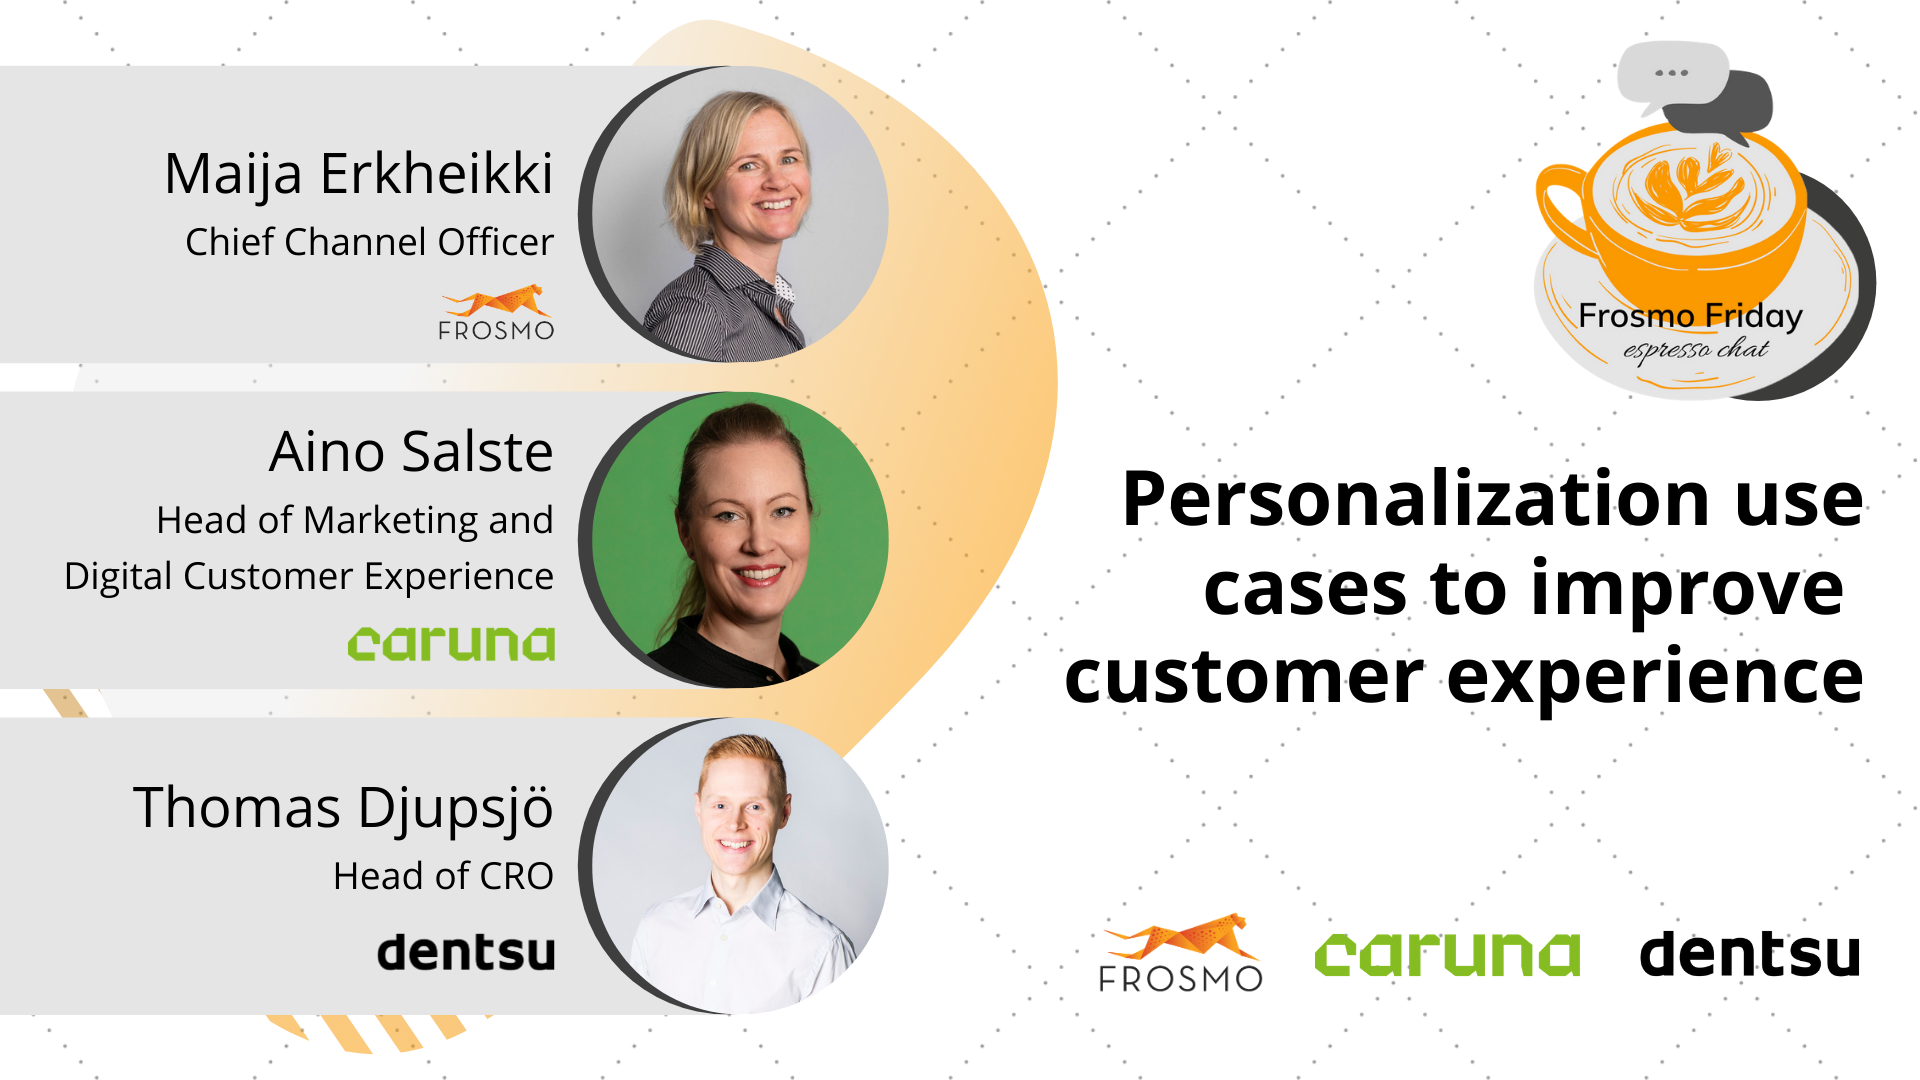 Personalization use cases to improve customer experience